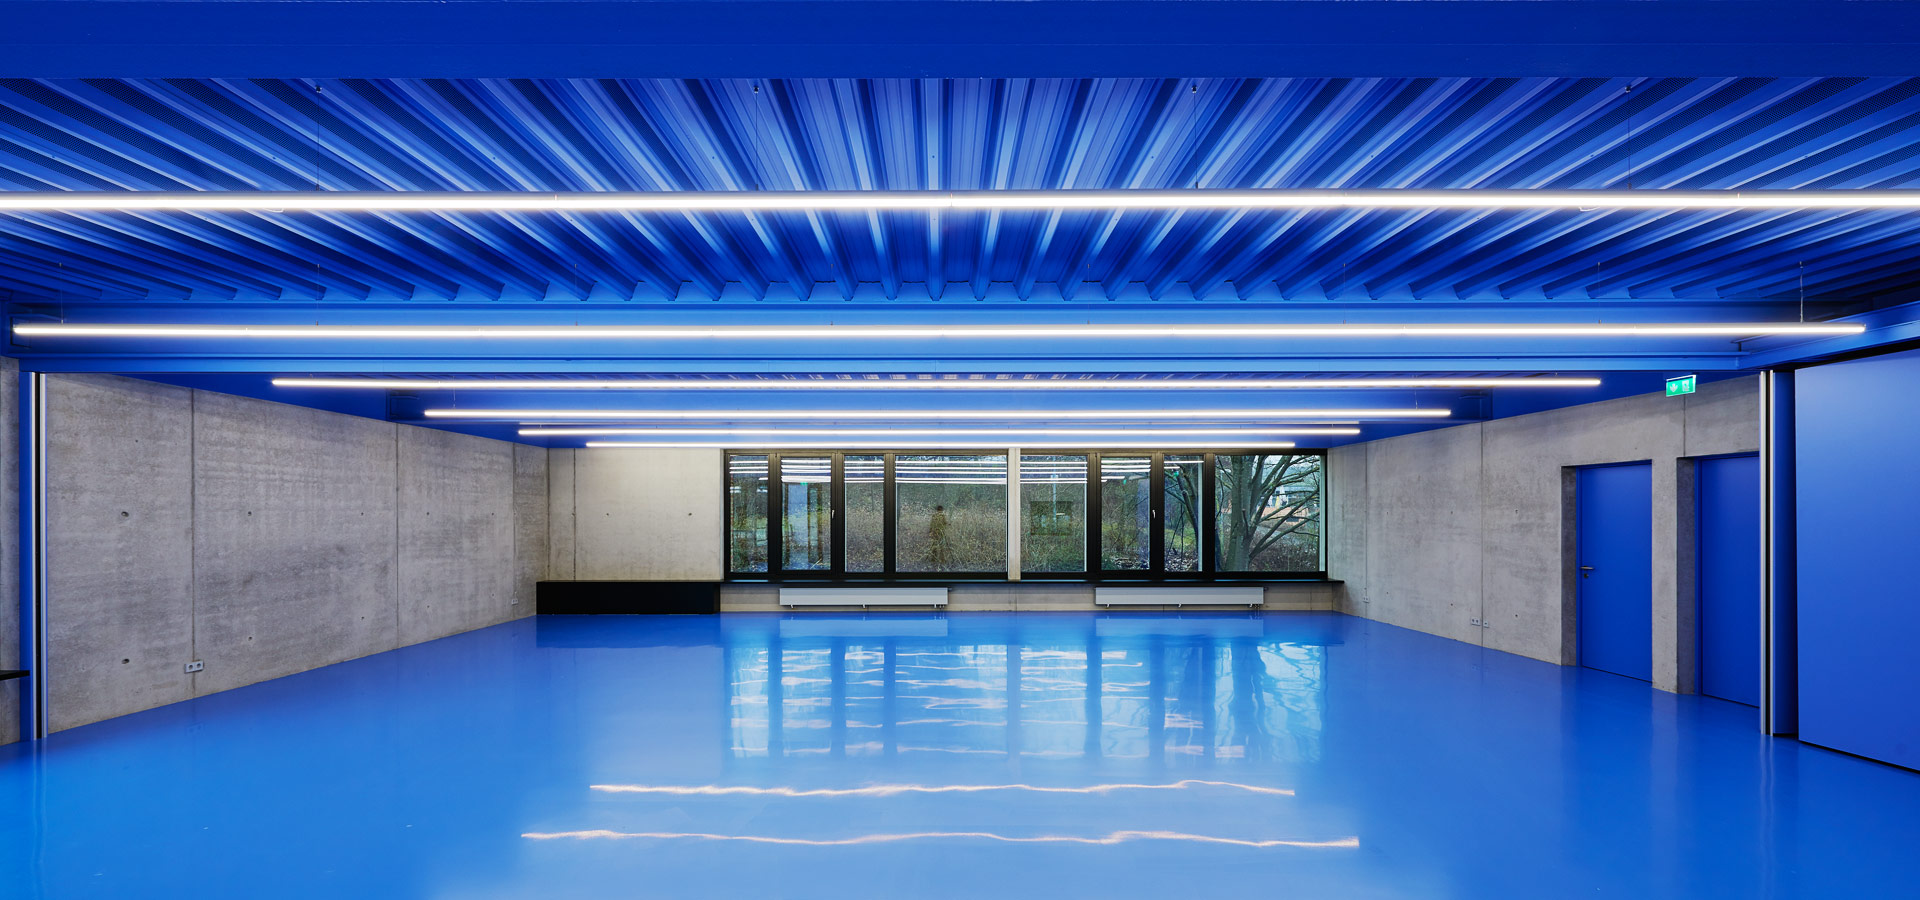 Luxsystem architectural lighting for fire station indoor led luminaire 20.3